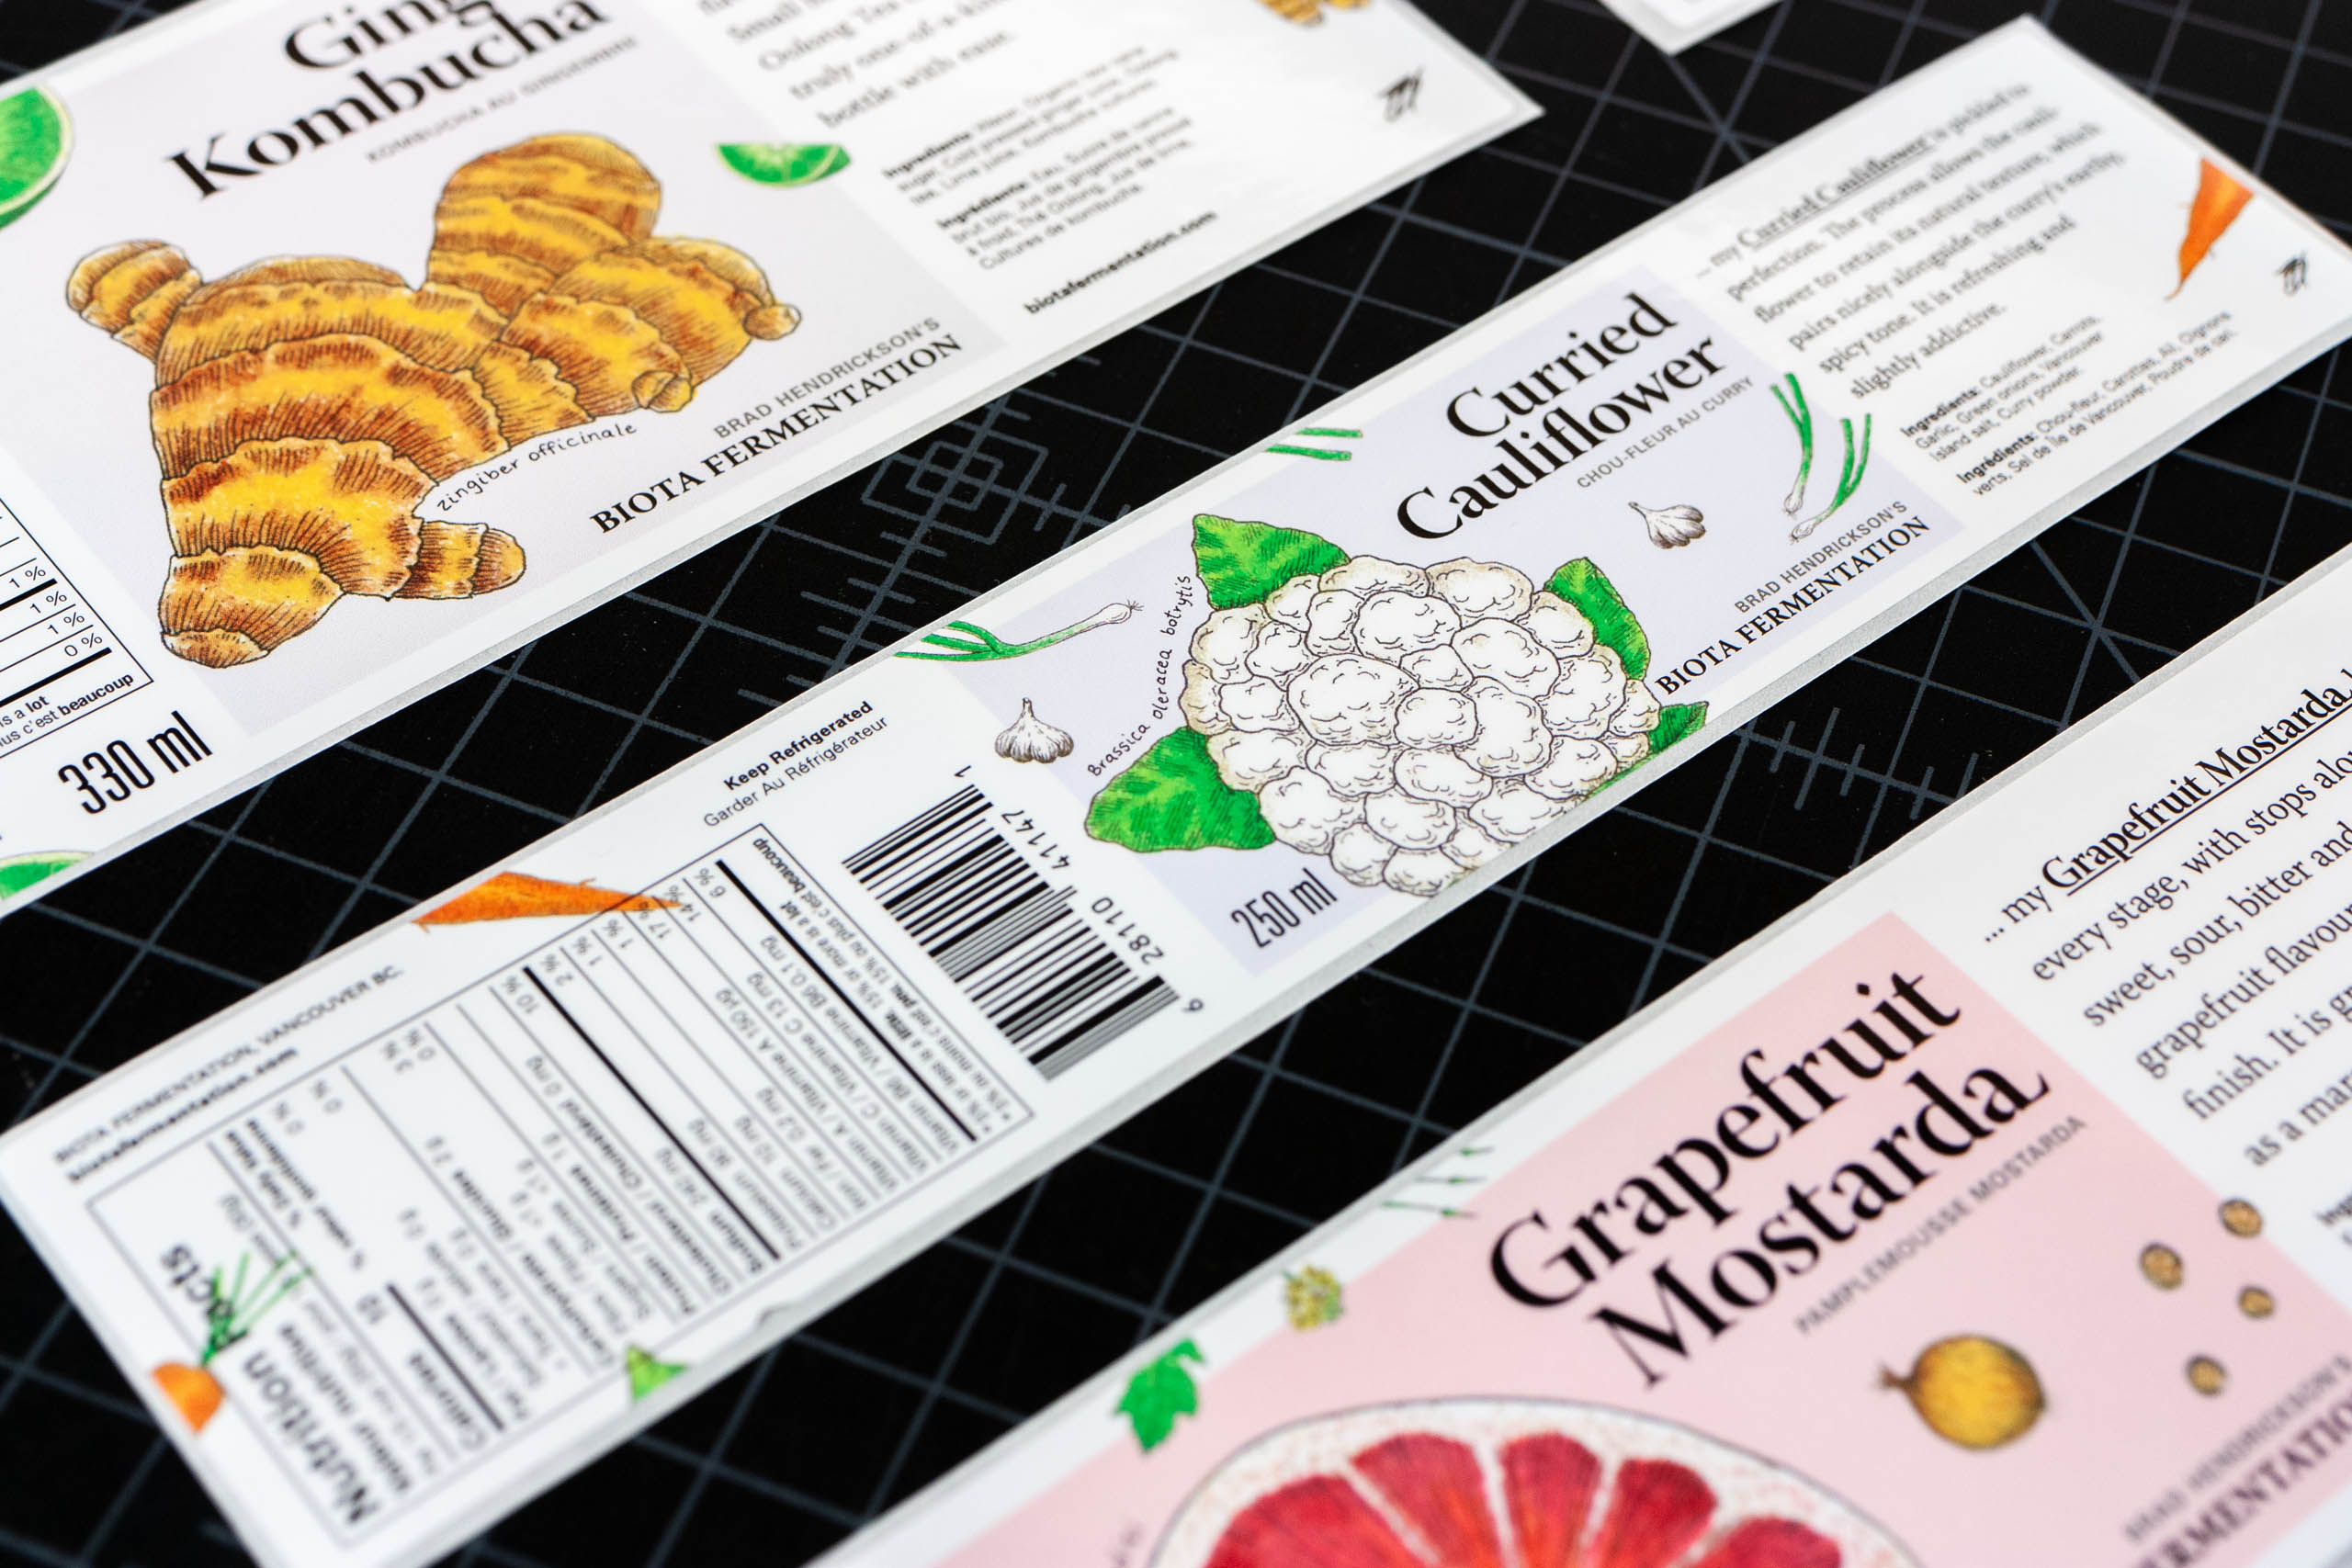 Close up of the Curried Cauliflower label showcasing the informational layout — by Dima Yagnyuk.